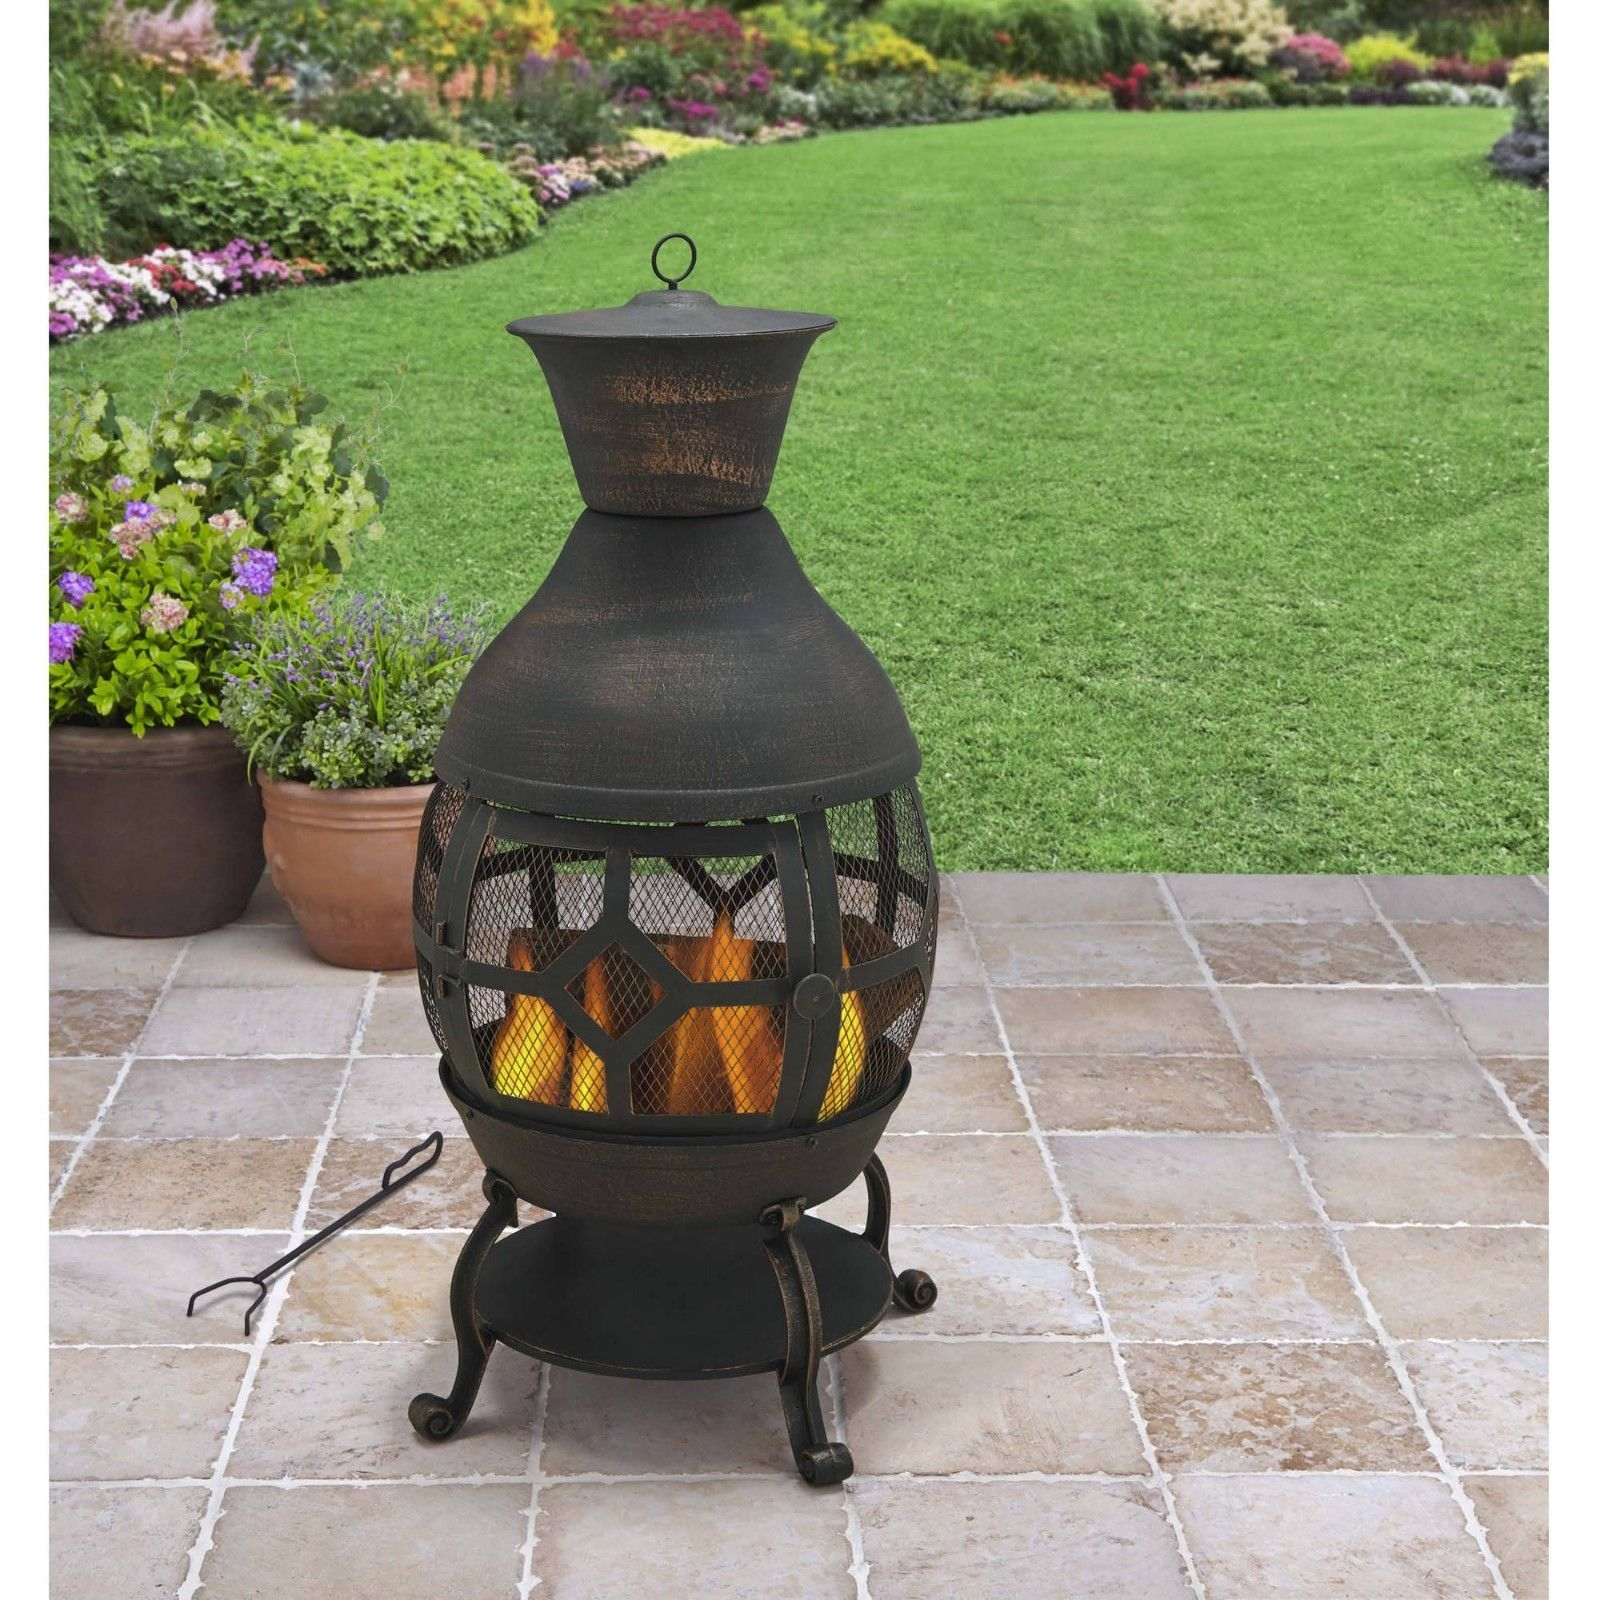 Good Cast Iron Chiminea Outdoor Fireplace Fire Pit Antique Bronze W/ Poker And  Cover